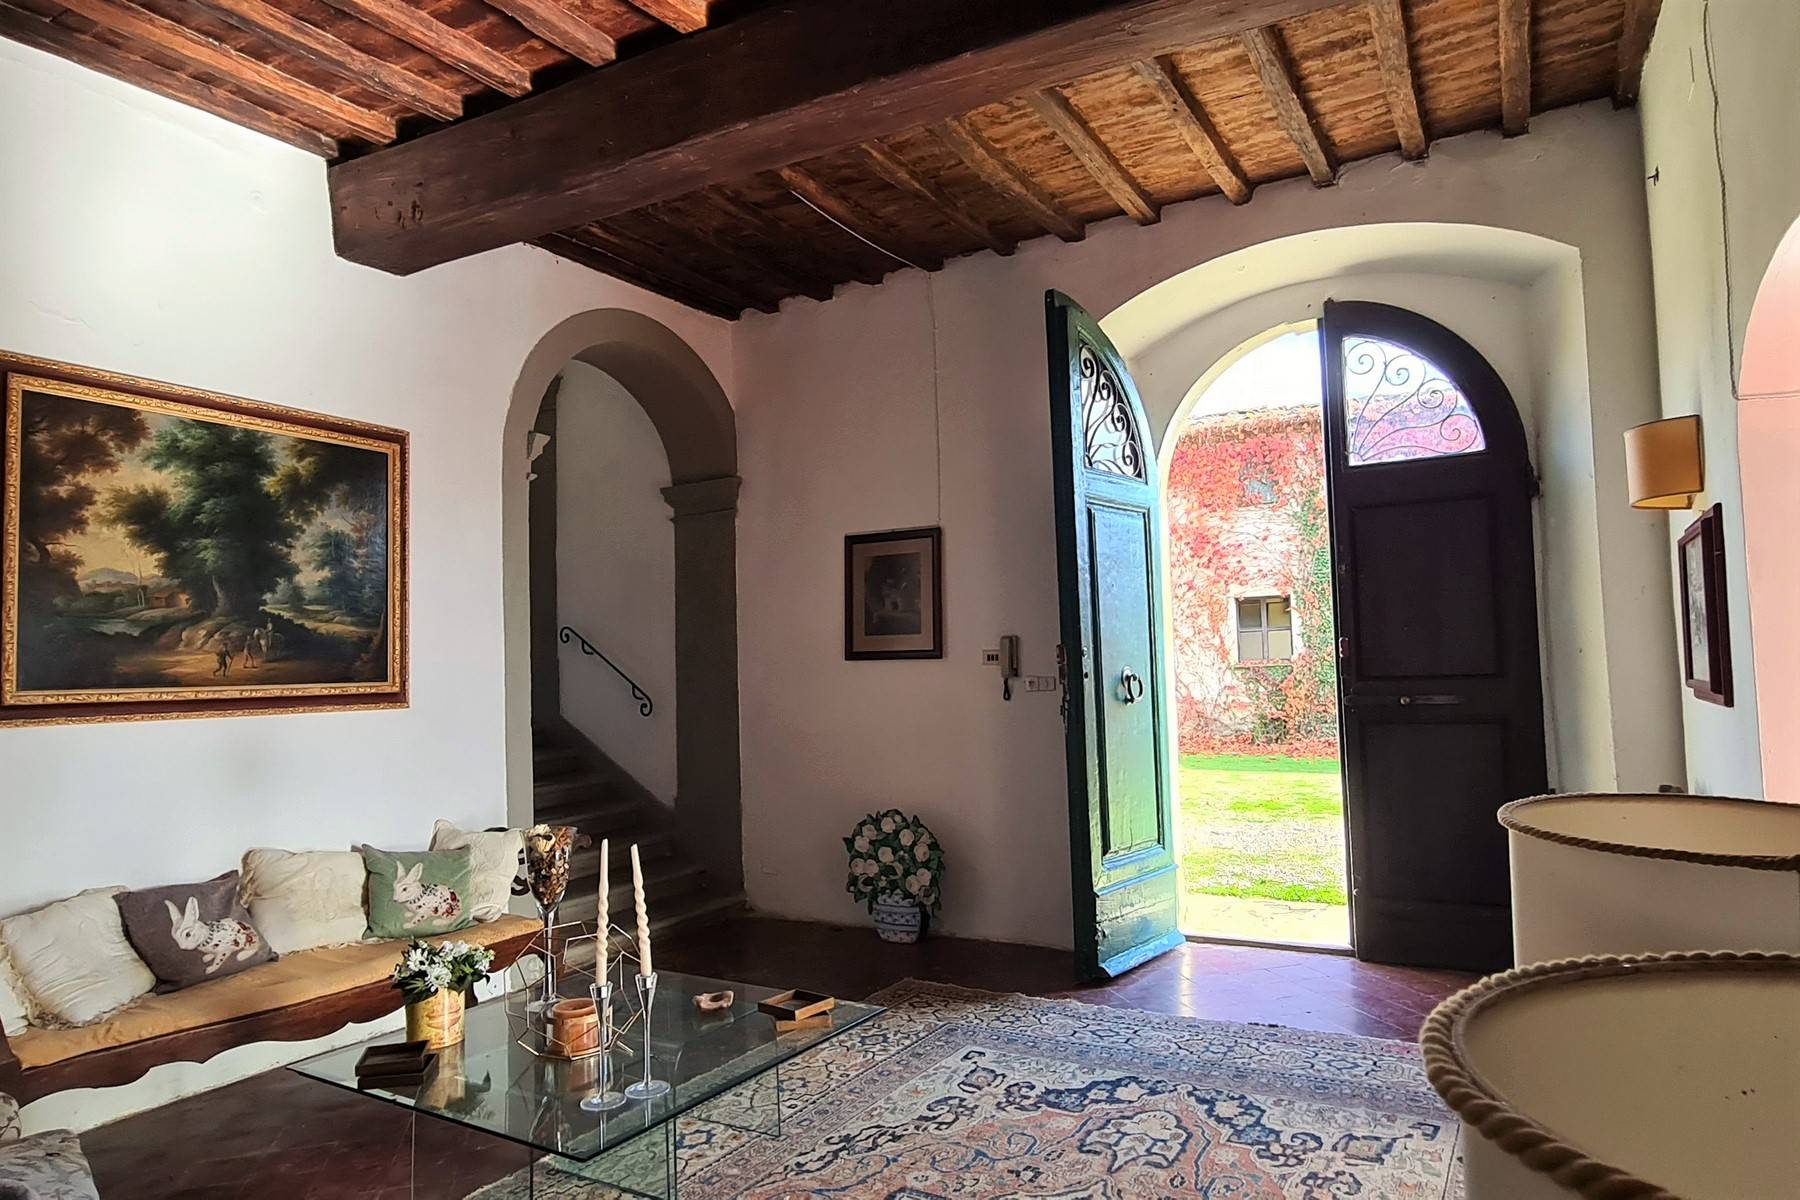 Enchanting historical villa in the heart of Chianti - 10